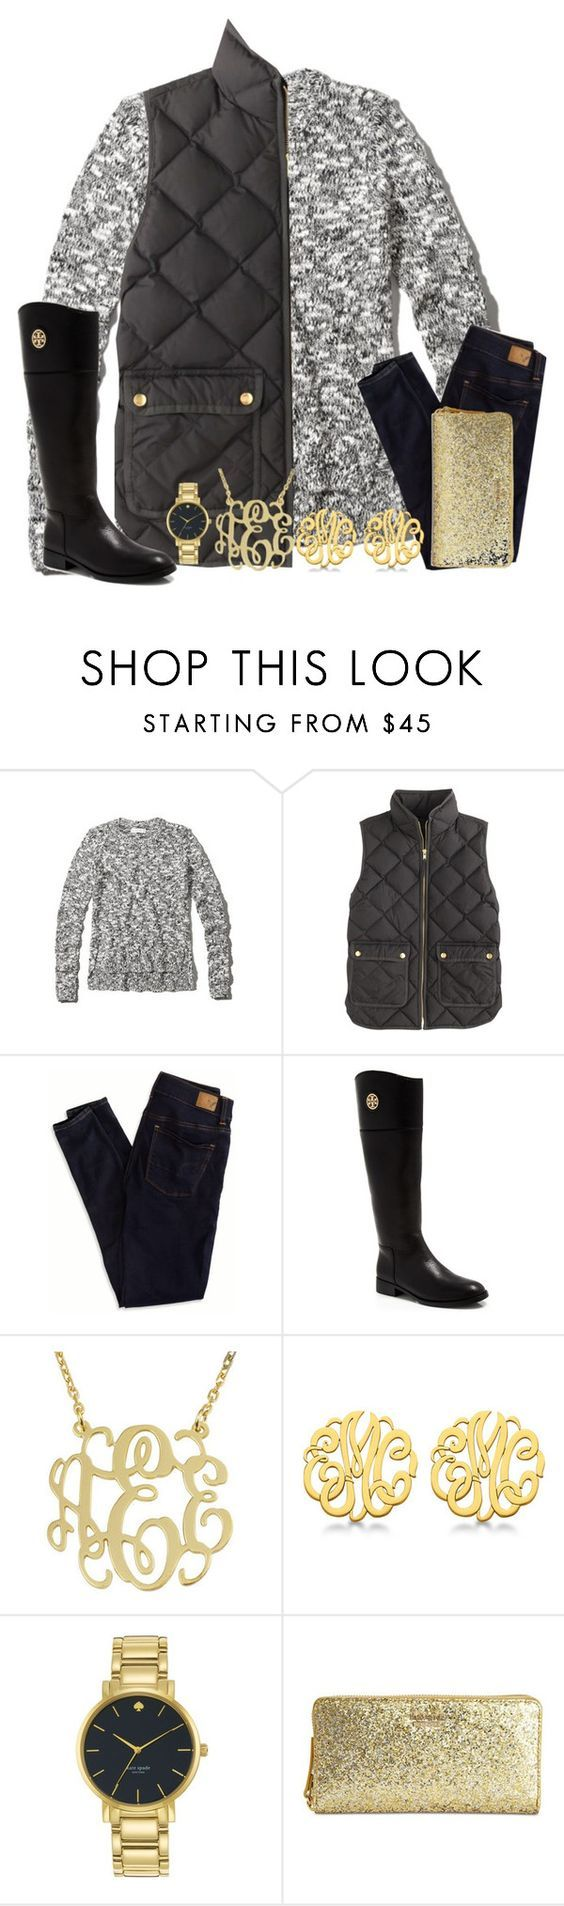 """""""Mono is the best gram"""" by carolinaprep137 ❤ liked on Polyvore featuring Abercrombie & Fitch, J.Crew, American Eagle Outfitters, Tory Burch, Allurez and Kate Spade"""